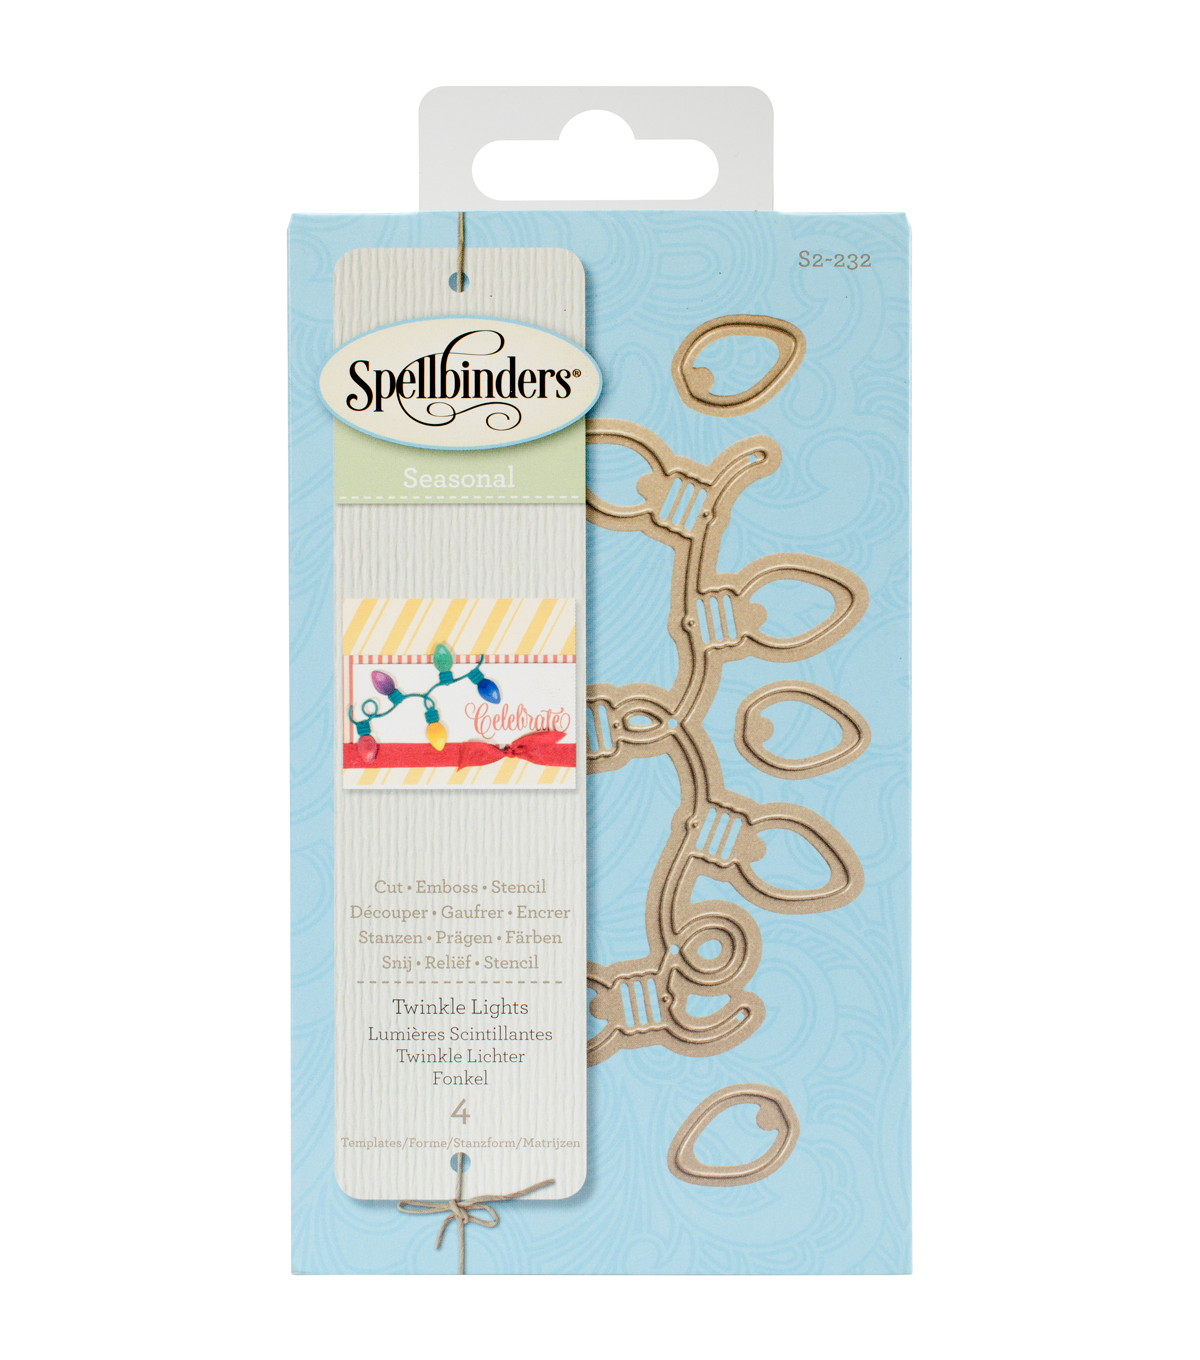 Spellbinders™ Holiday Die D-Lites 4 Pack Etched Dies-Twinkle Lights